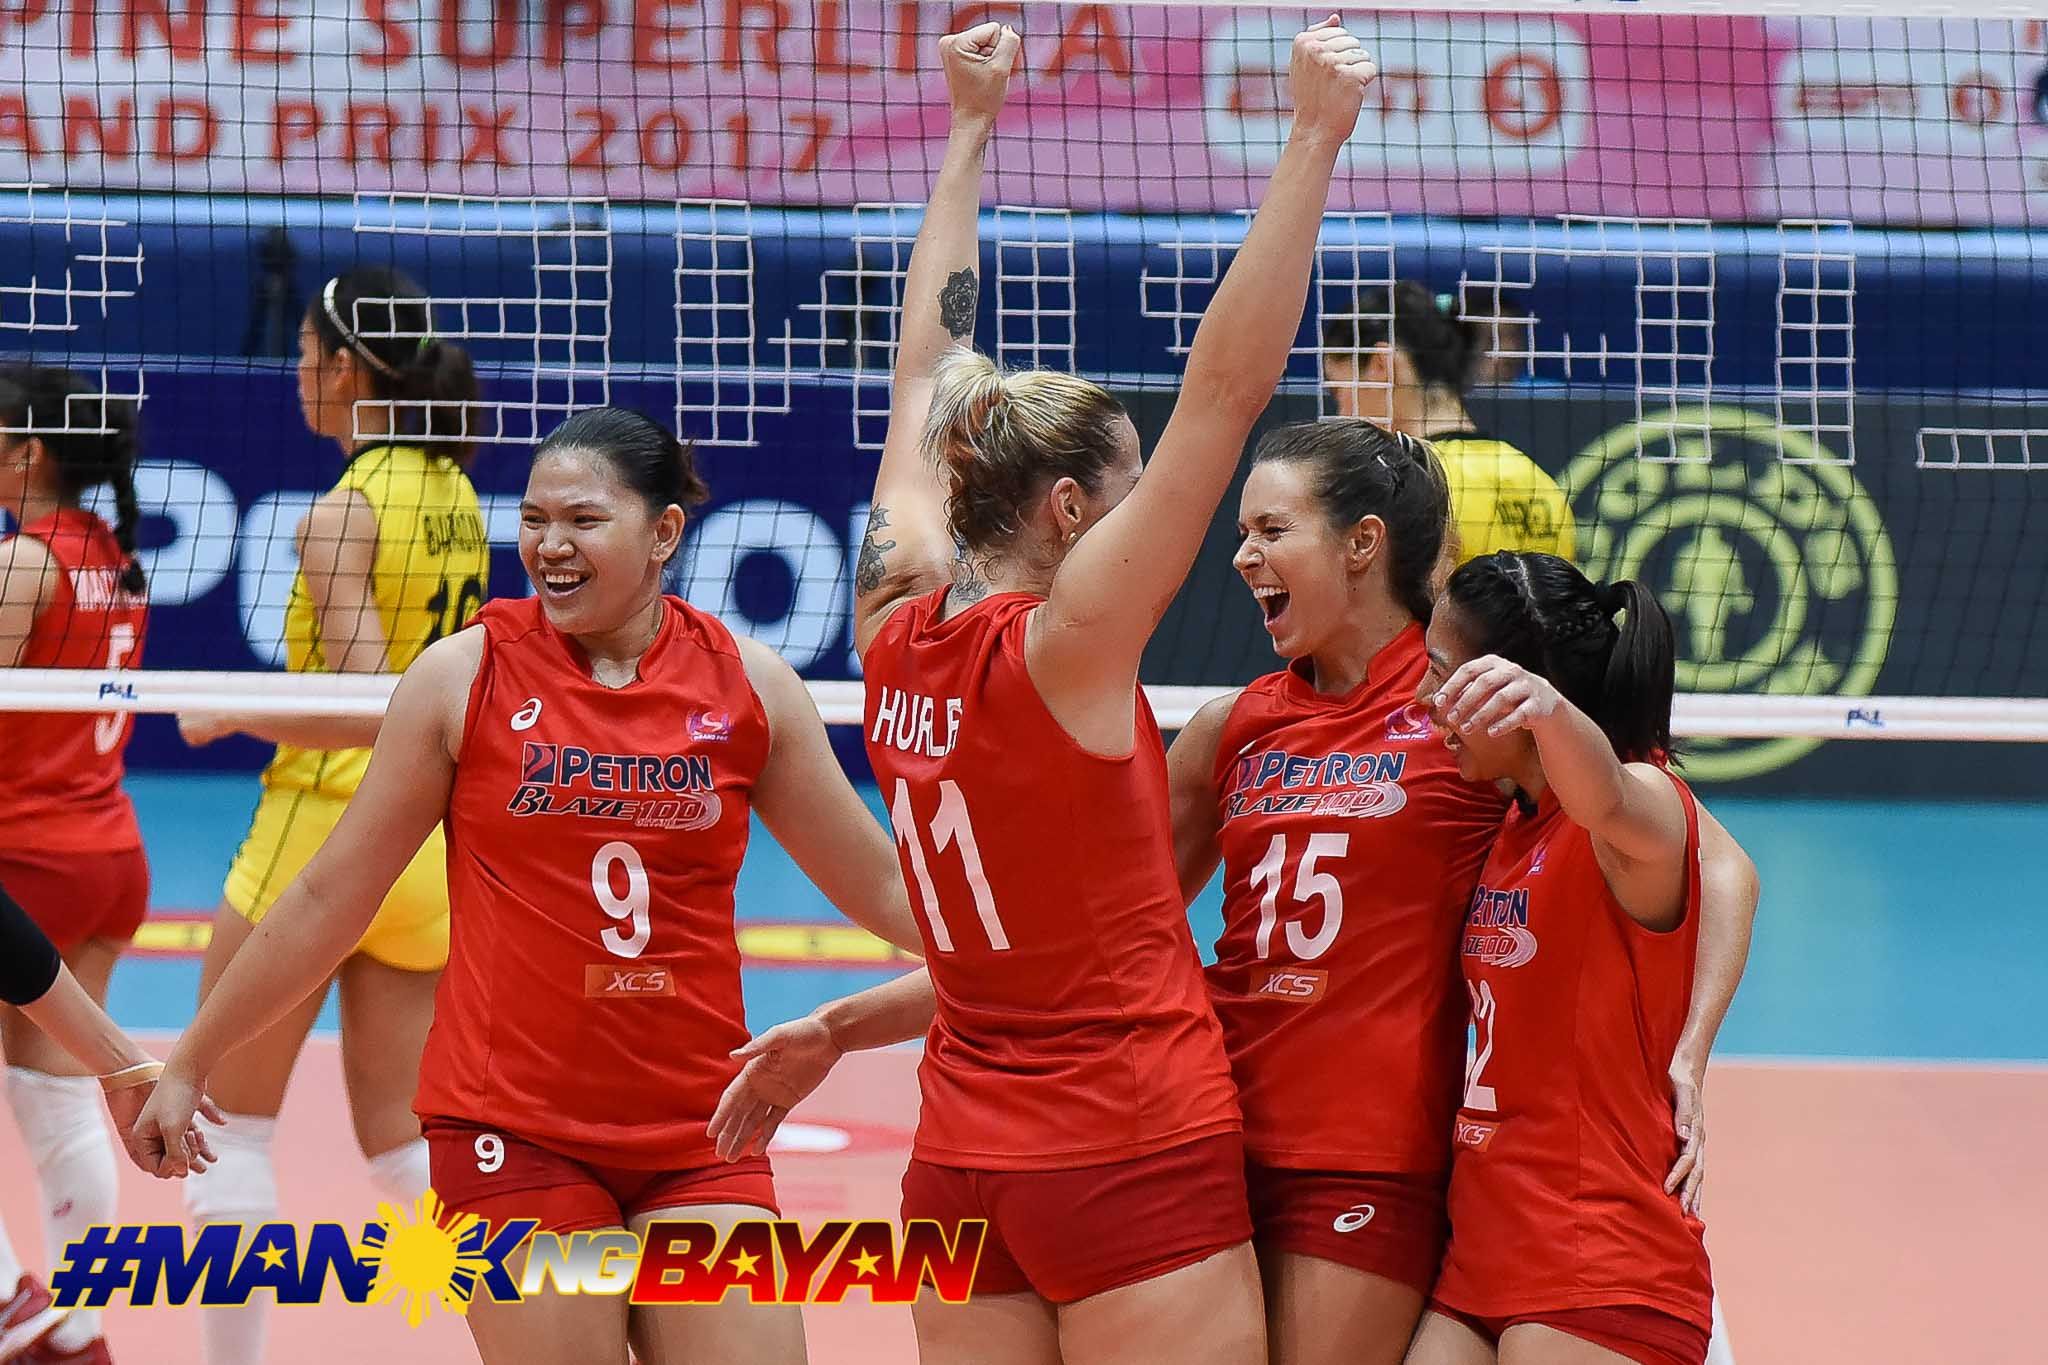 Philippine Sports News - Tiebreaker Times How all imports in the PSL Finals are connected News PSL Volleyball  Petron Blaze Spikers Maria Jose Perez Lindsay Stalzer Kennedy Bryan Hillary Hurley F2 Logistics Cargo Movers 2017 PSL Season 2017 PSL Grand Prix